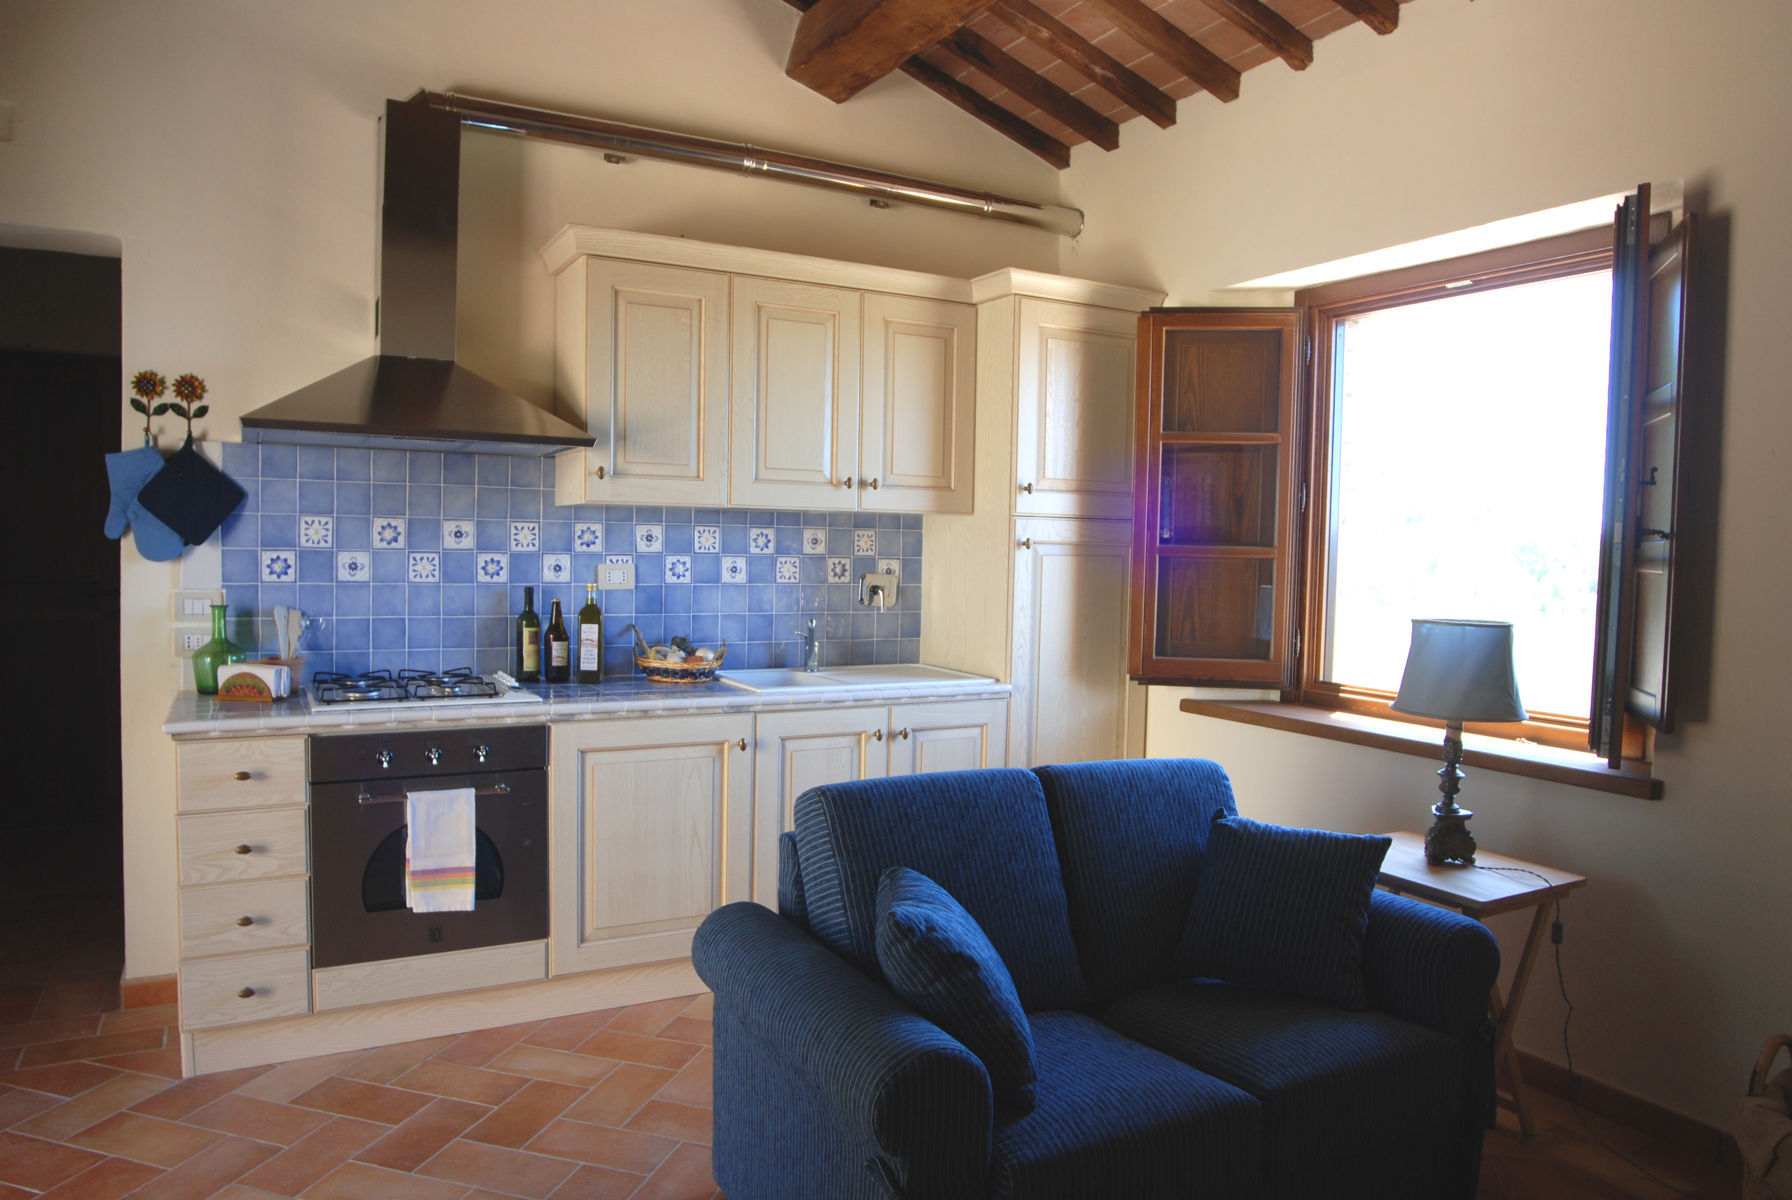 Apartments for sale in Panicale without posrednimkov terahovya